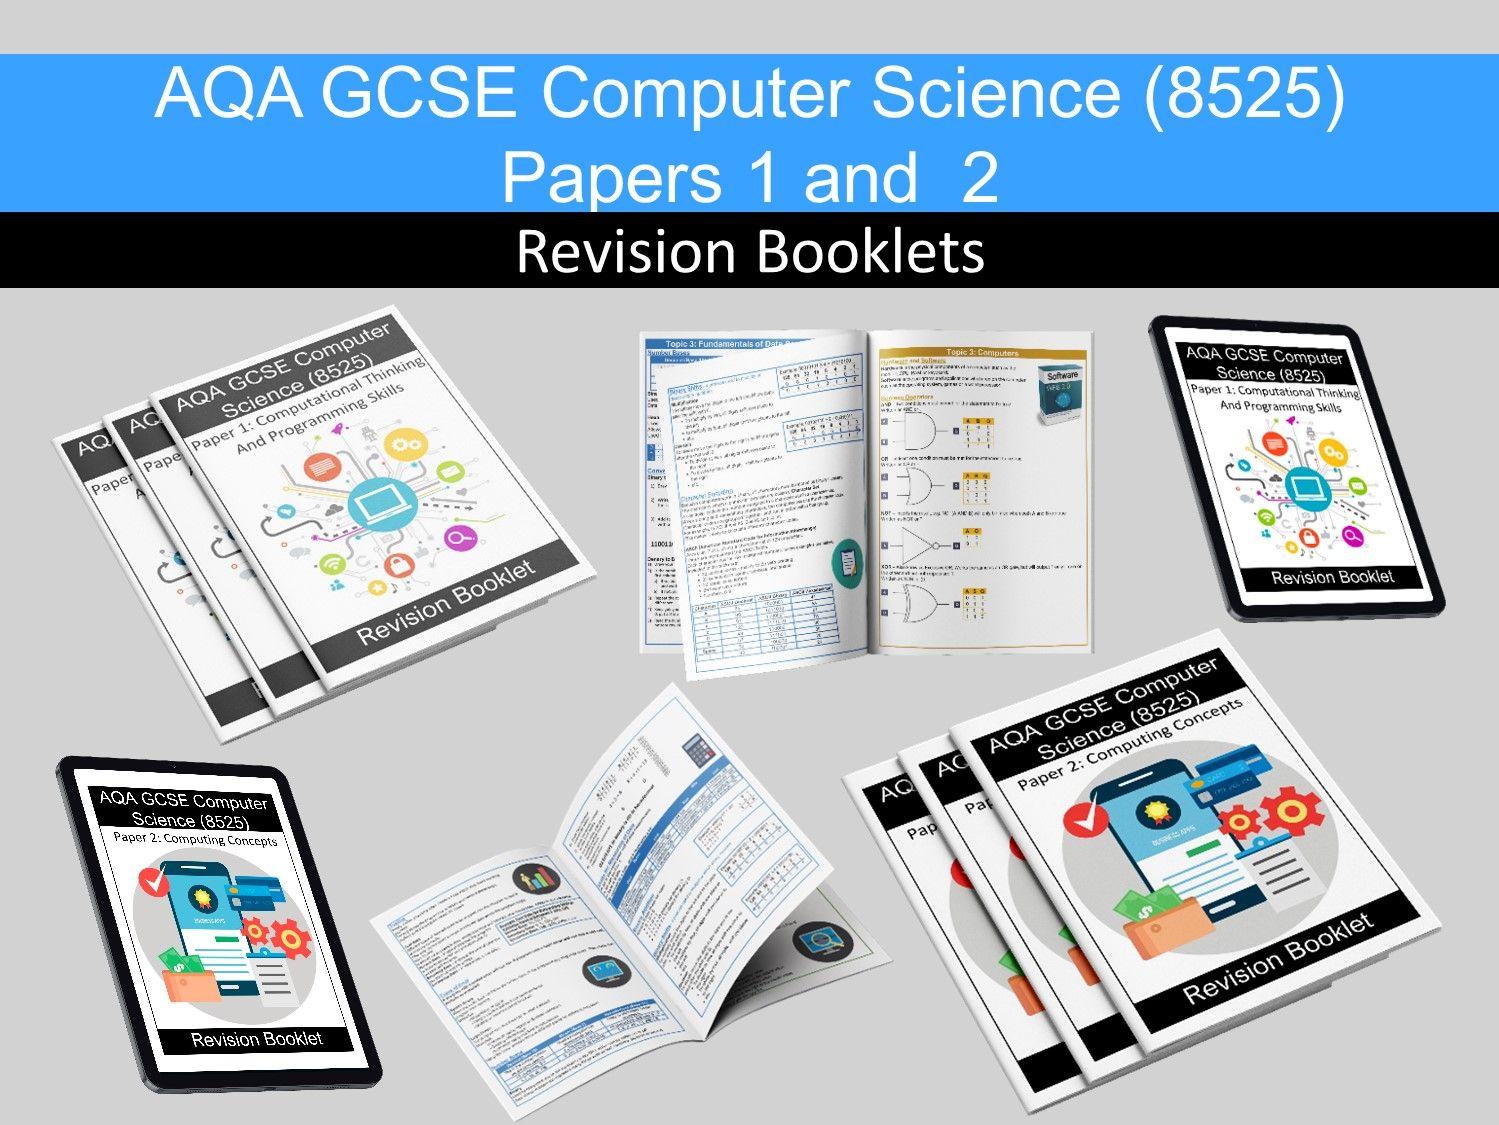 AQA GCSE Computer Science (8525) Papers 1 and 2 Revision Booklets